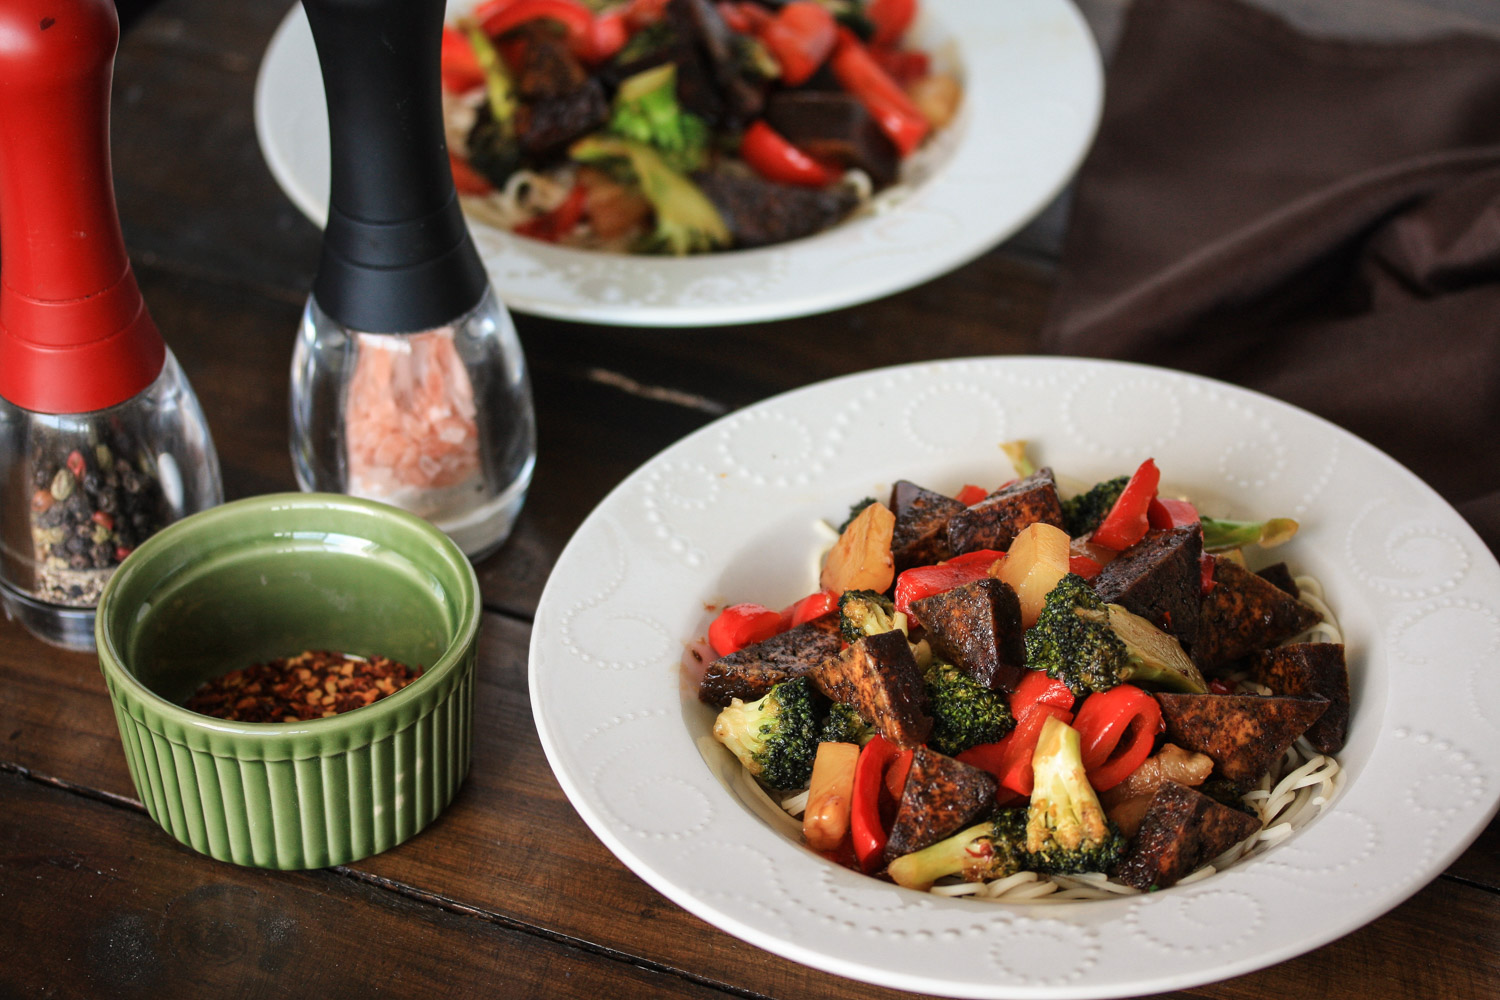 Tofu, broccoli and red capsicum stir fry with oriental plum sauce